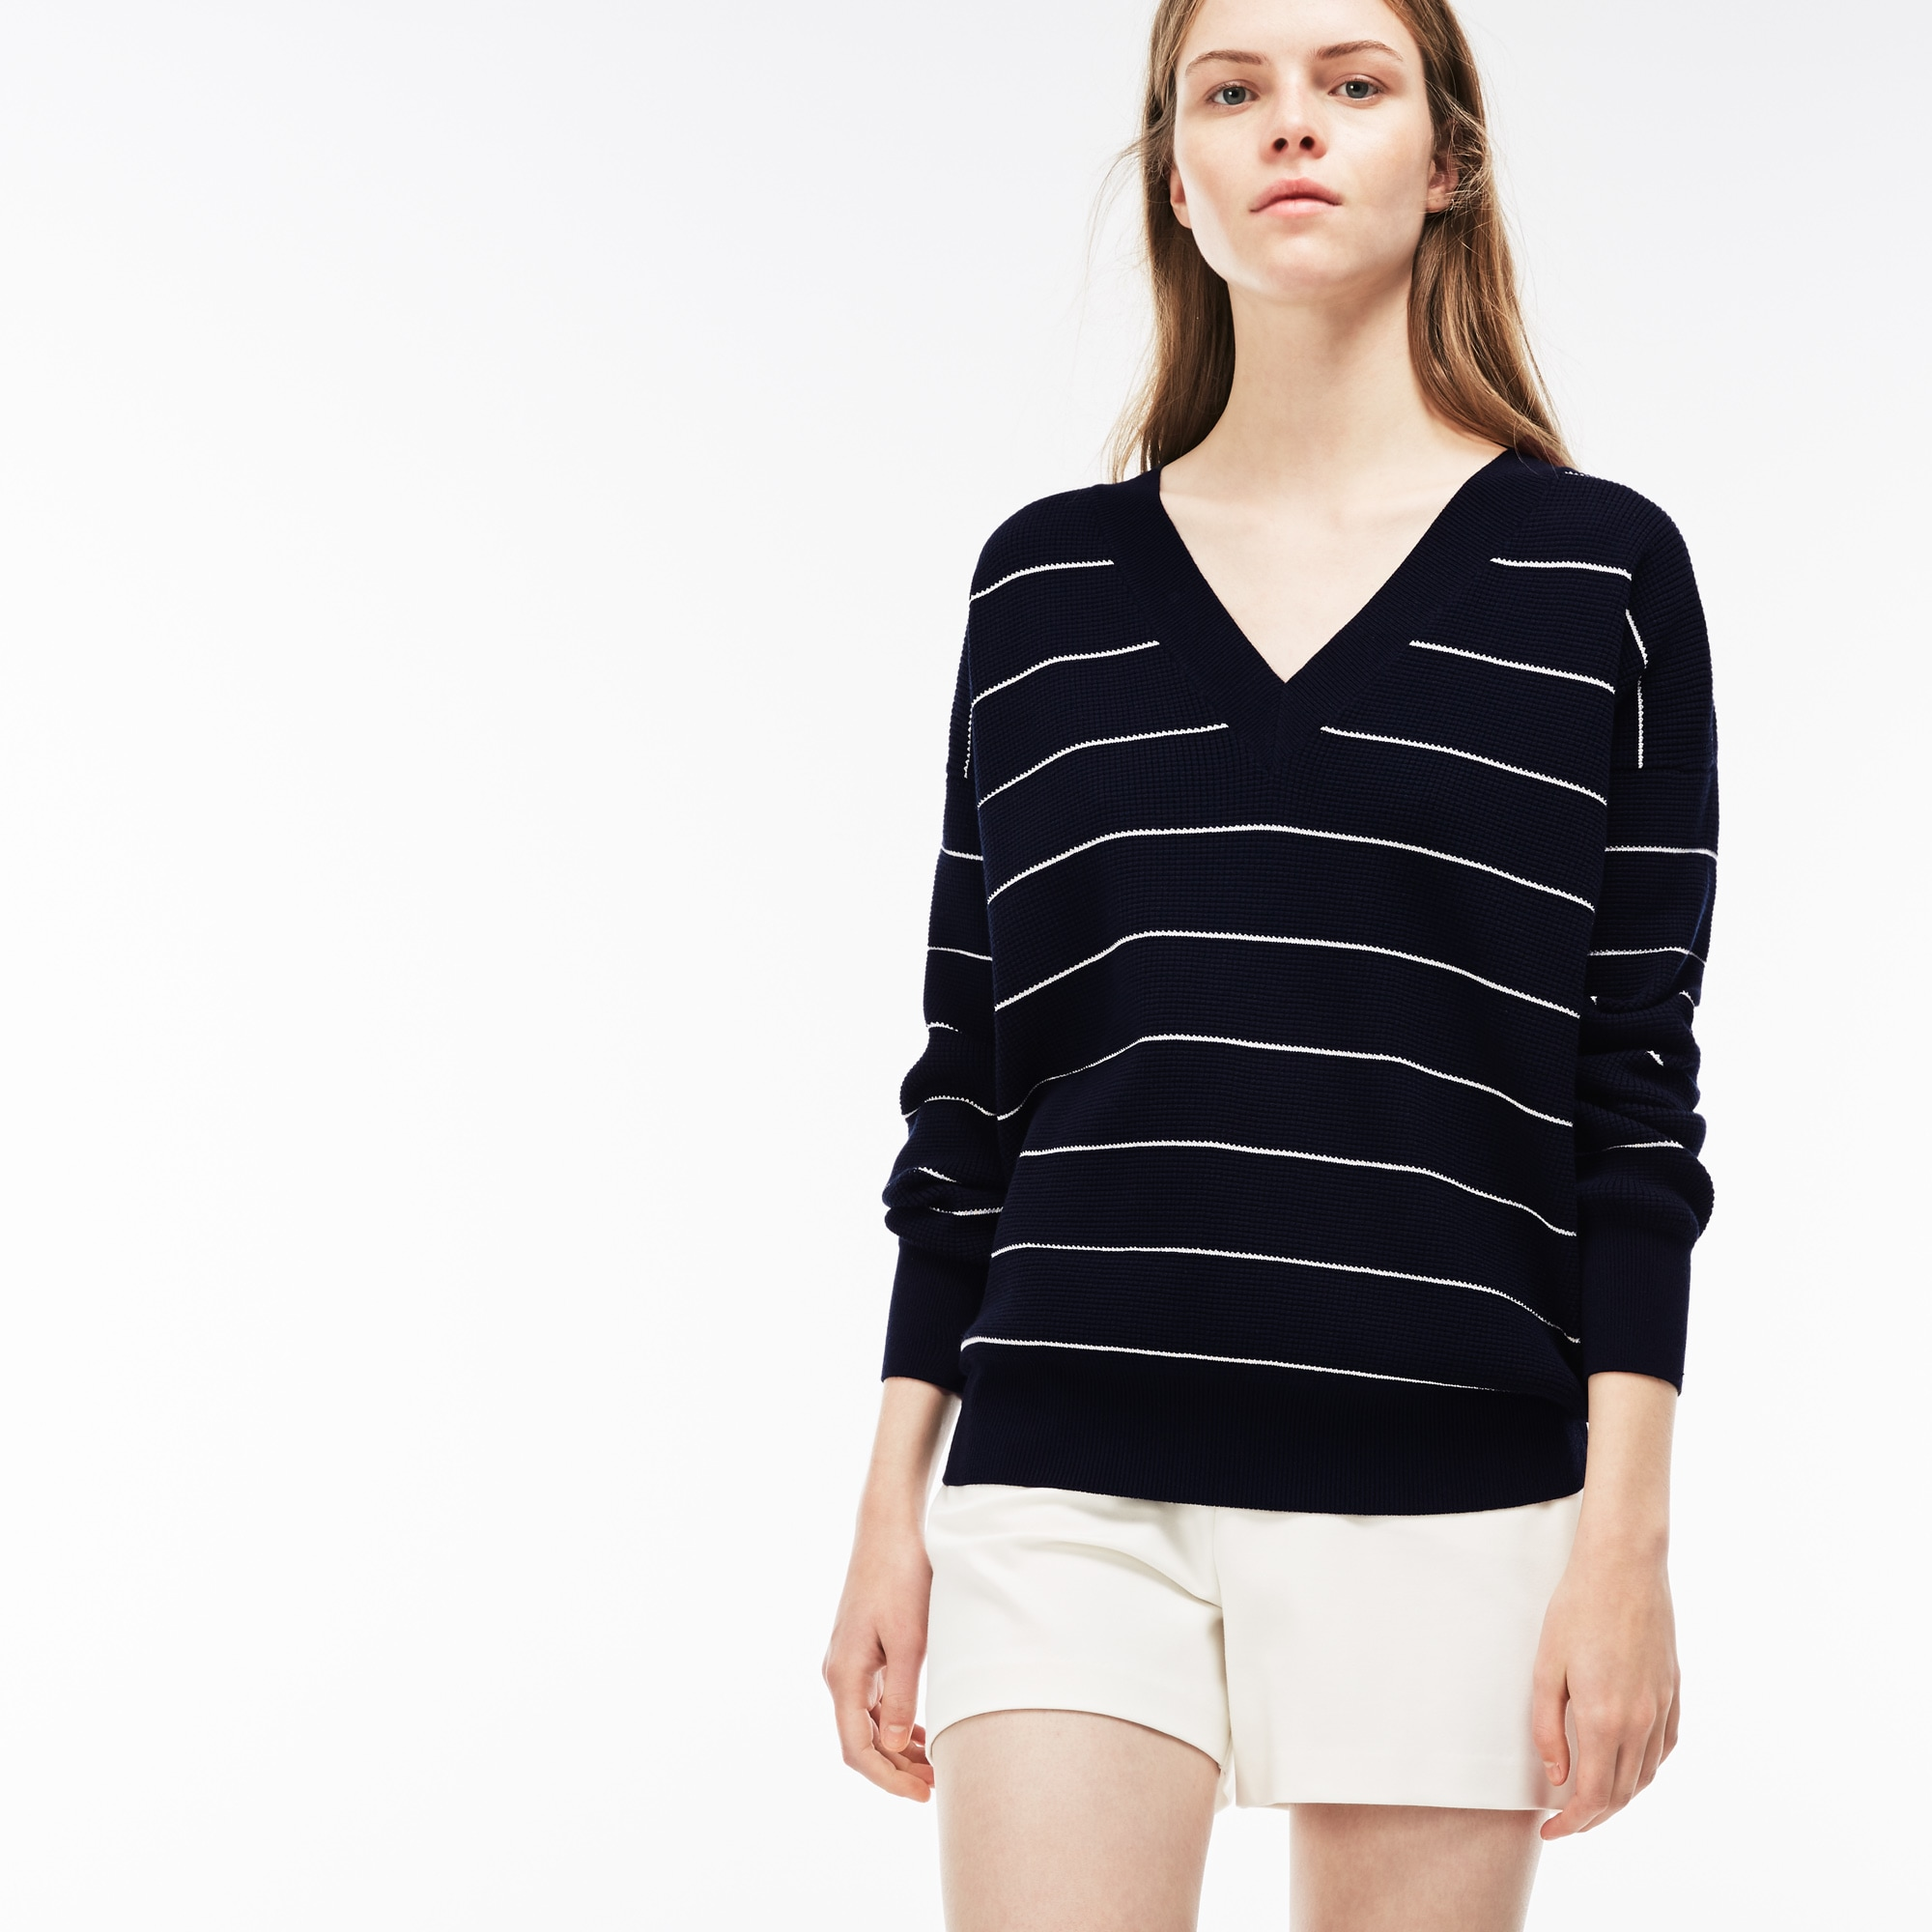 Women's V-neck Striped Honeycomb Knit Sweater